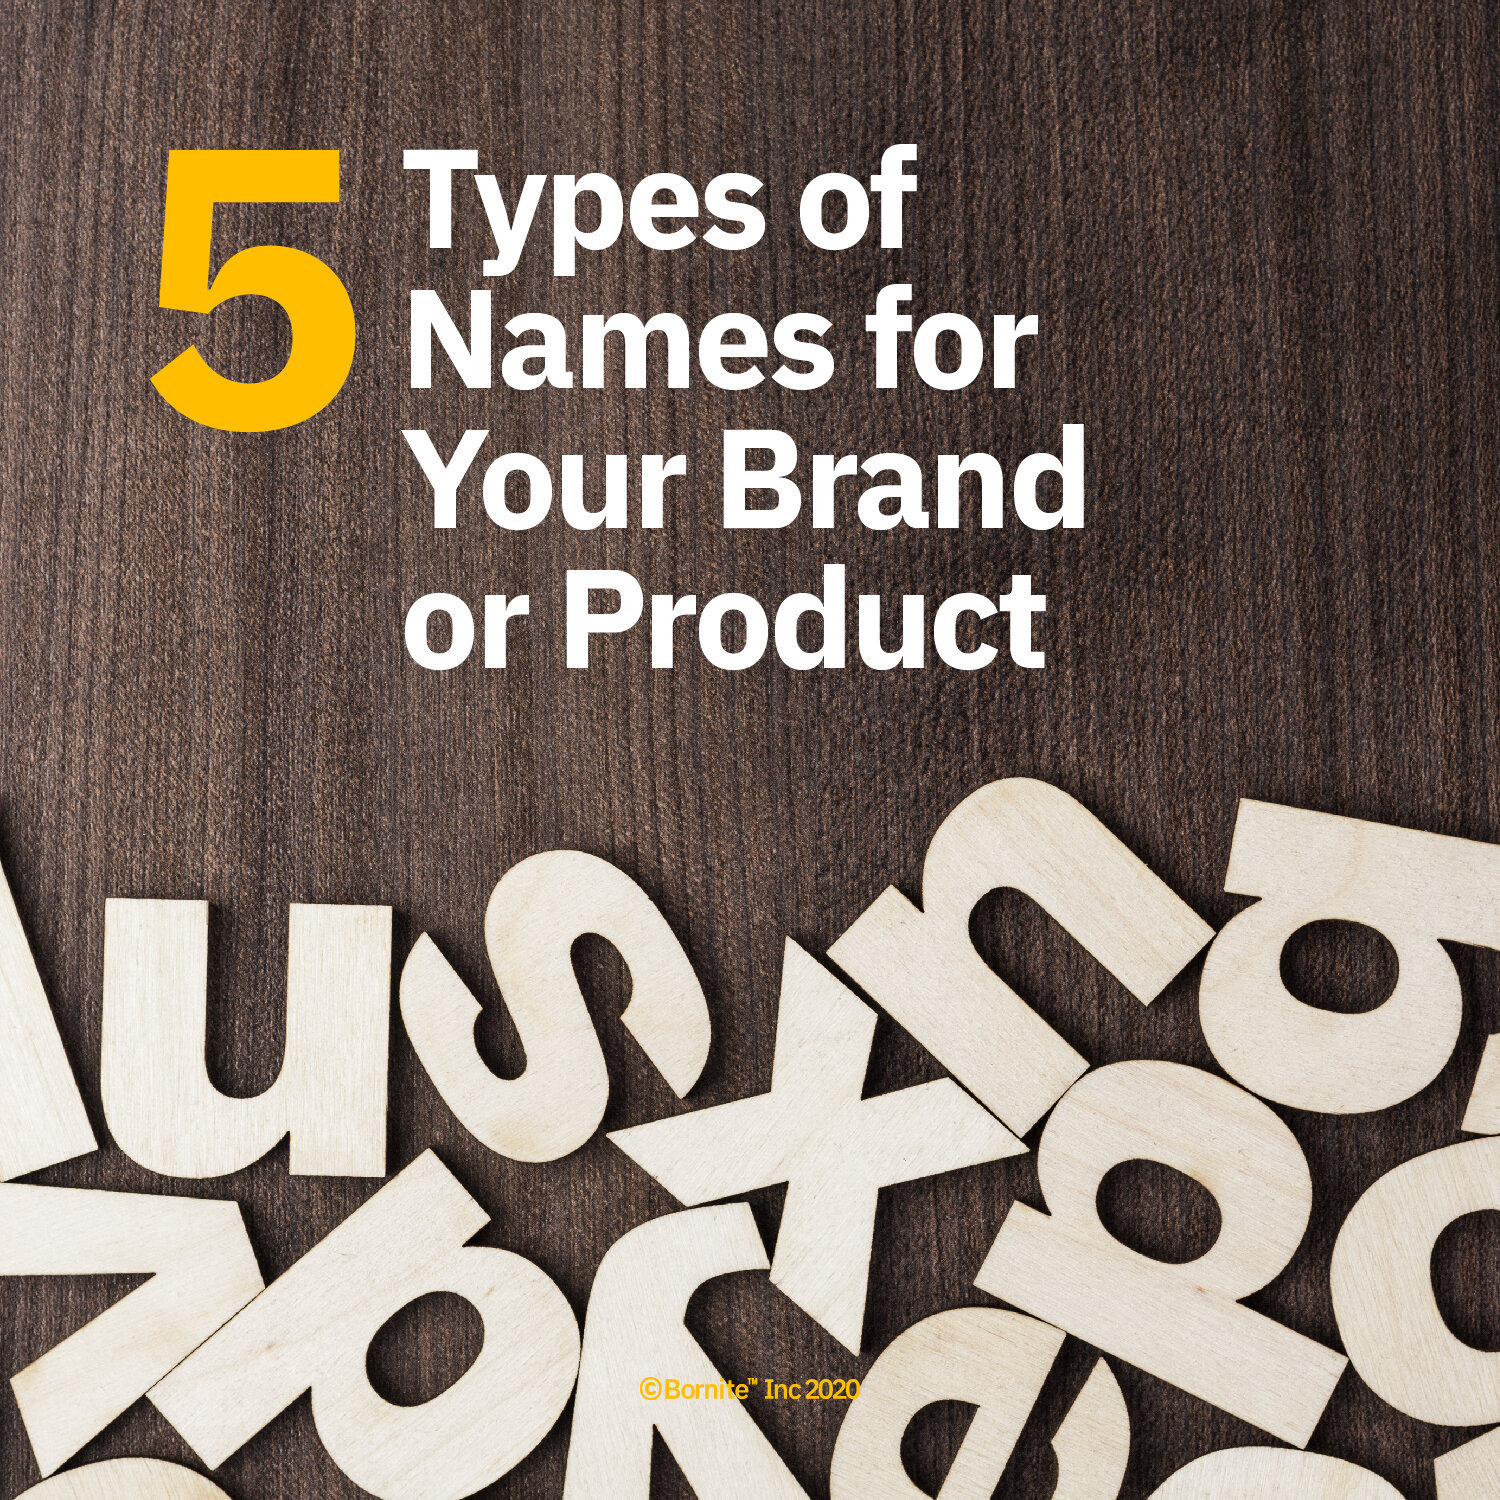 5 Types of Names for your Brand or Product